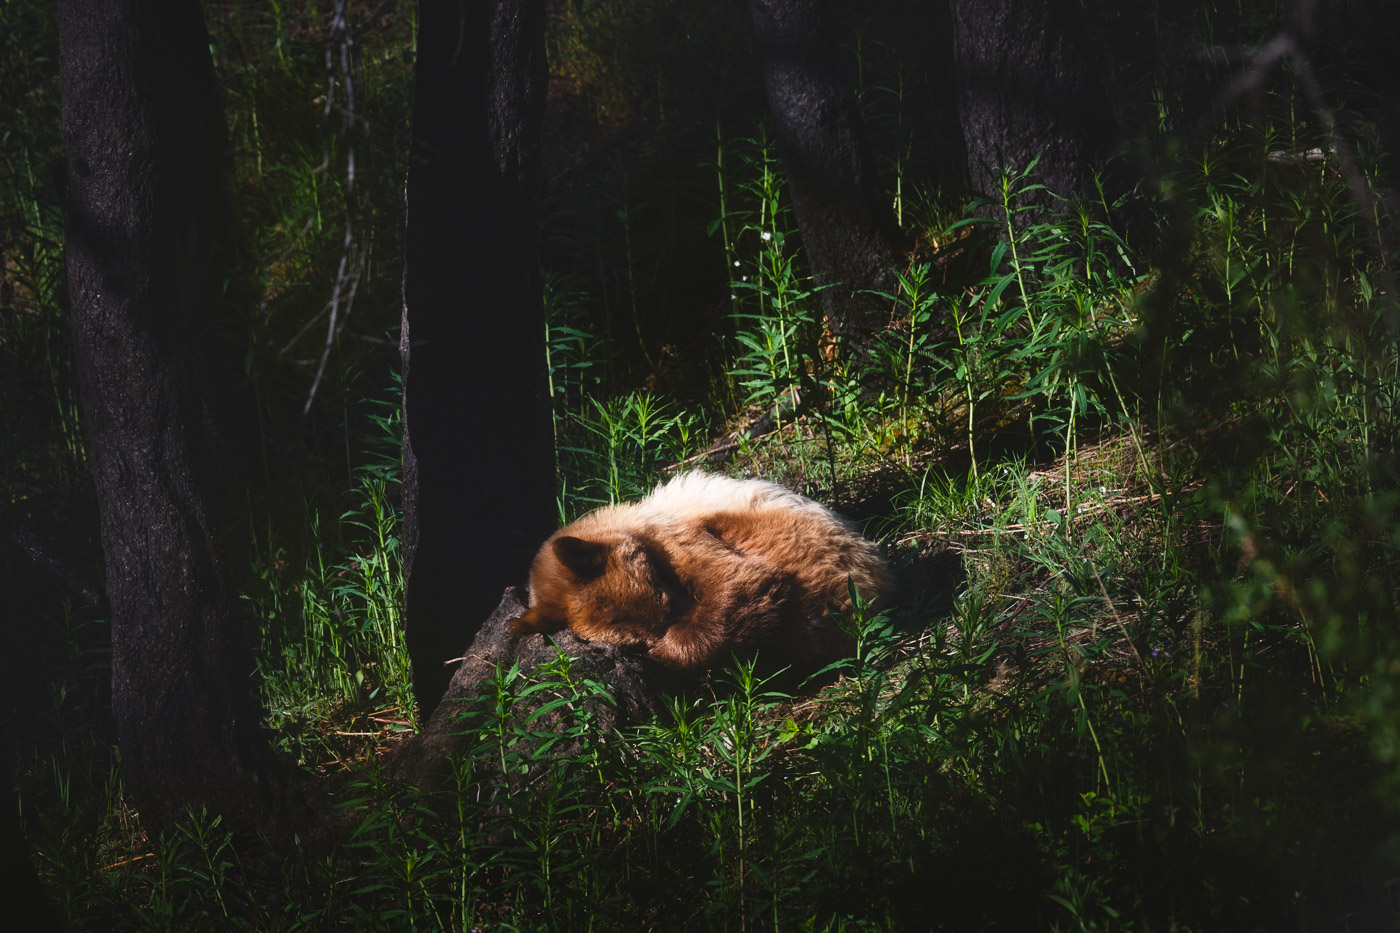 A bear sleeps with its paw over its nose in a forest